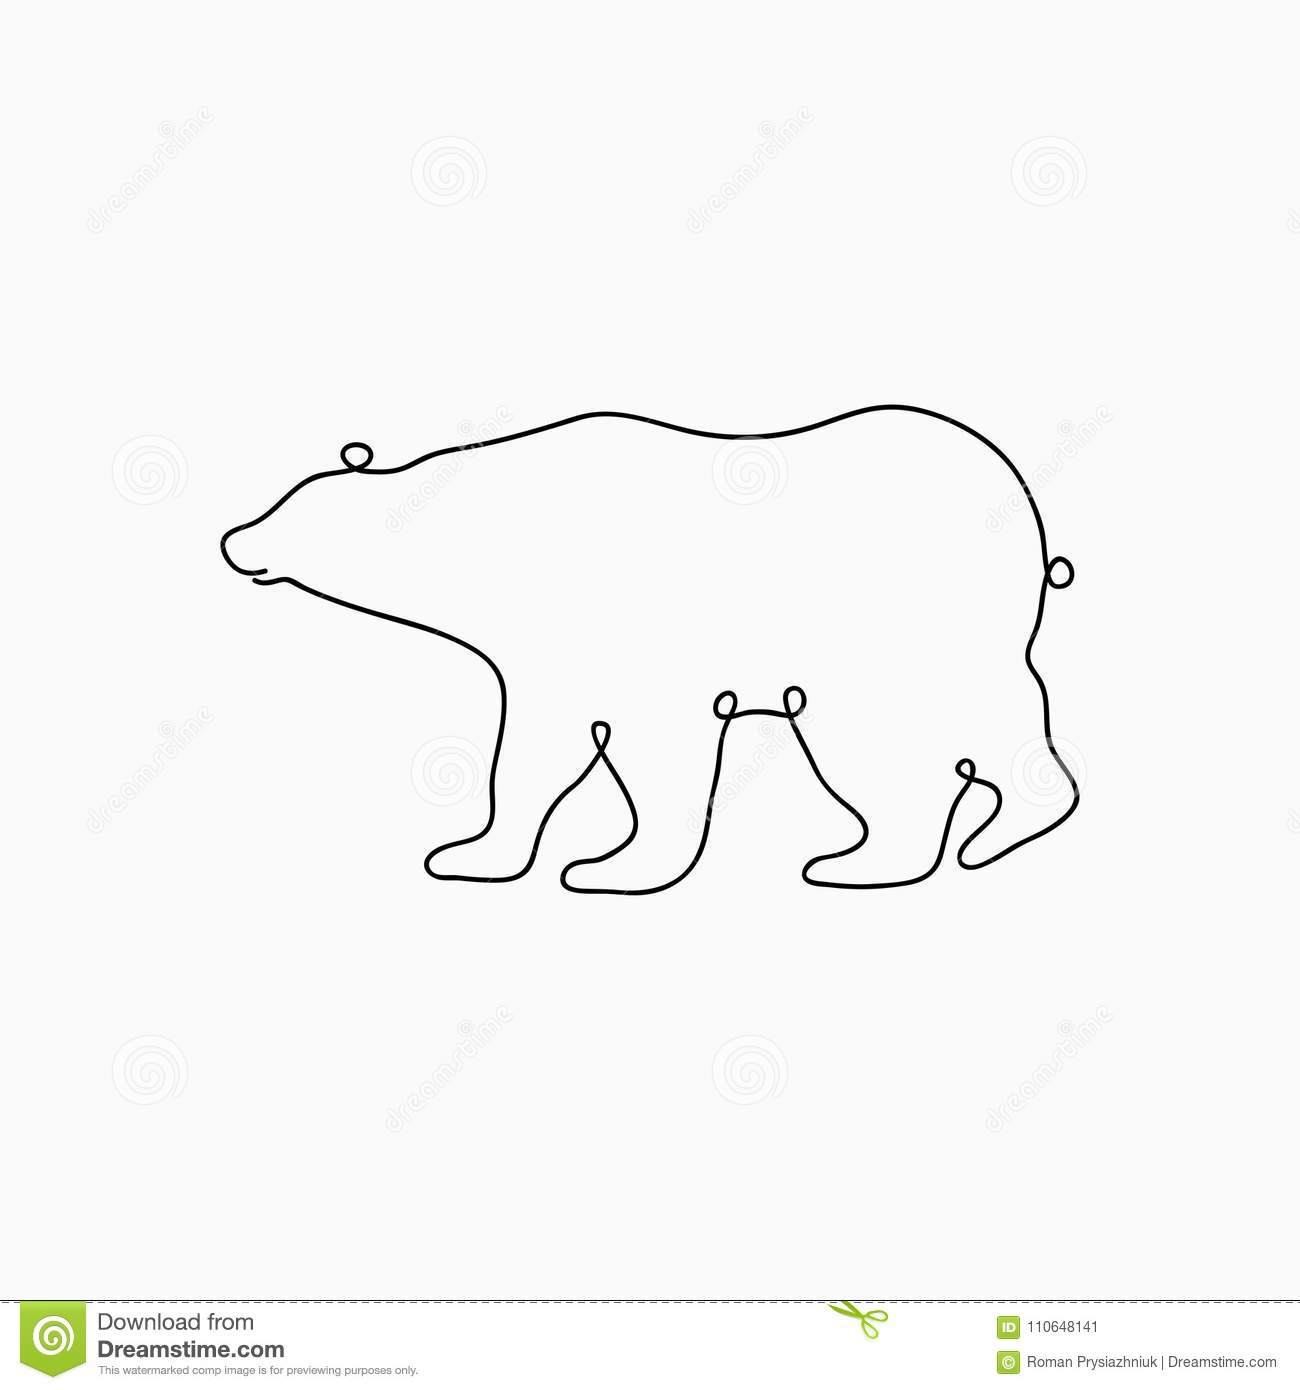 One Line Art Bear : Bear one line drawing continuous animal print hand